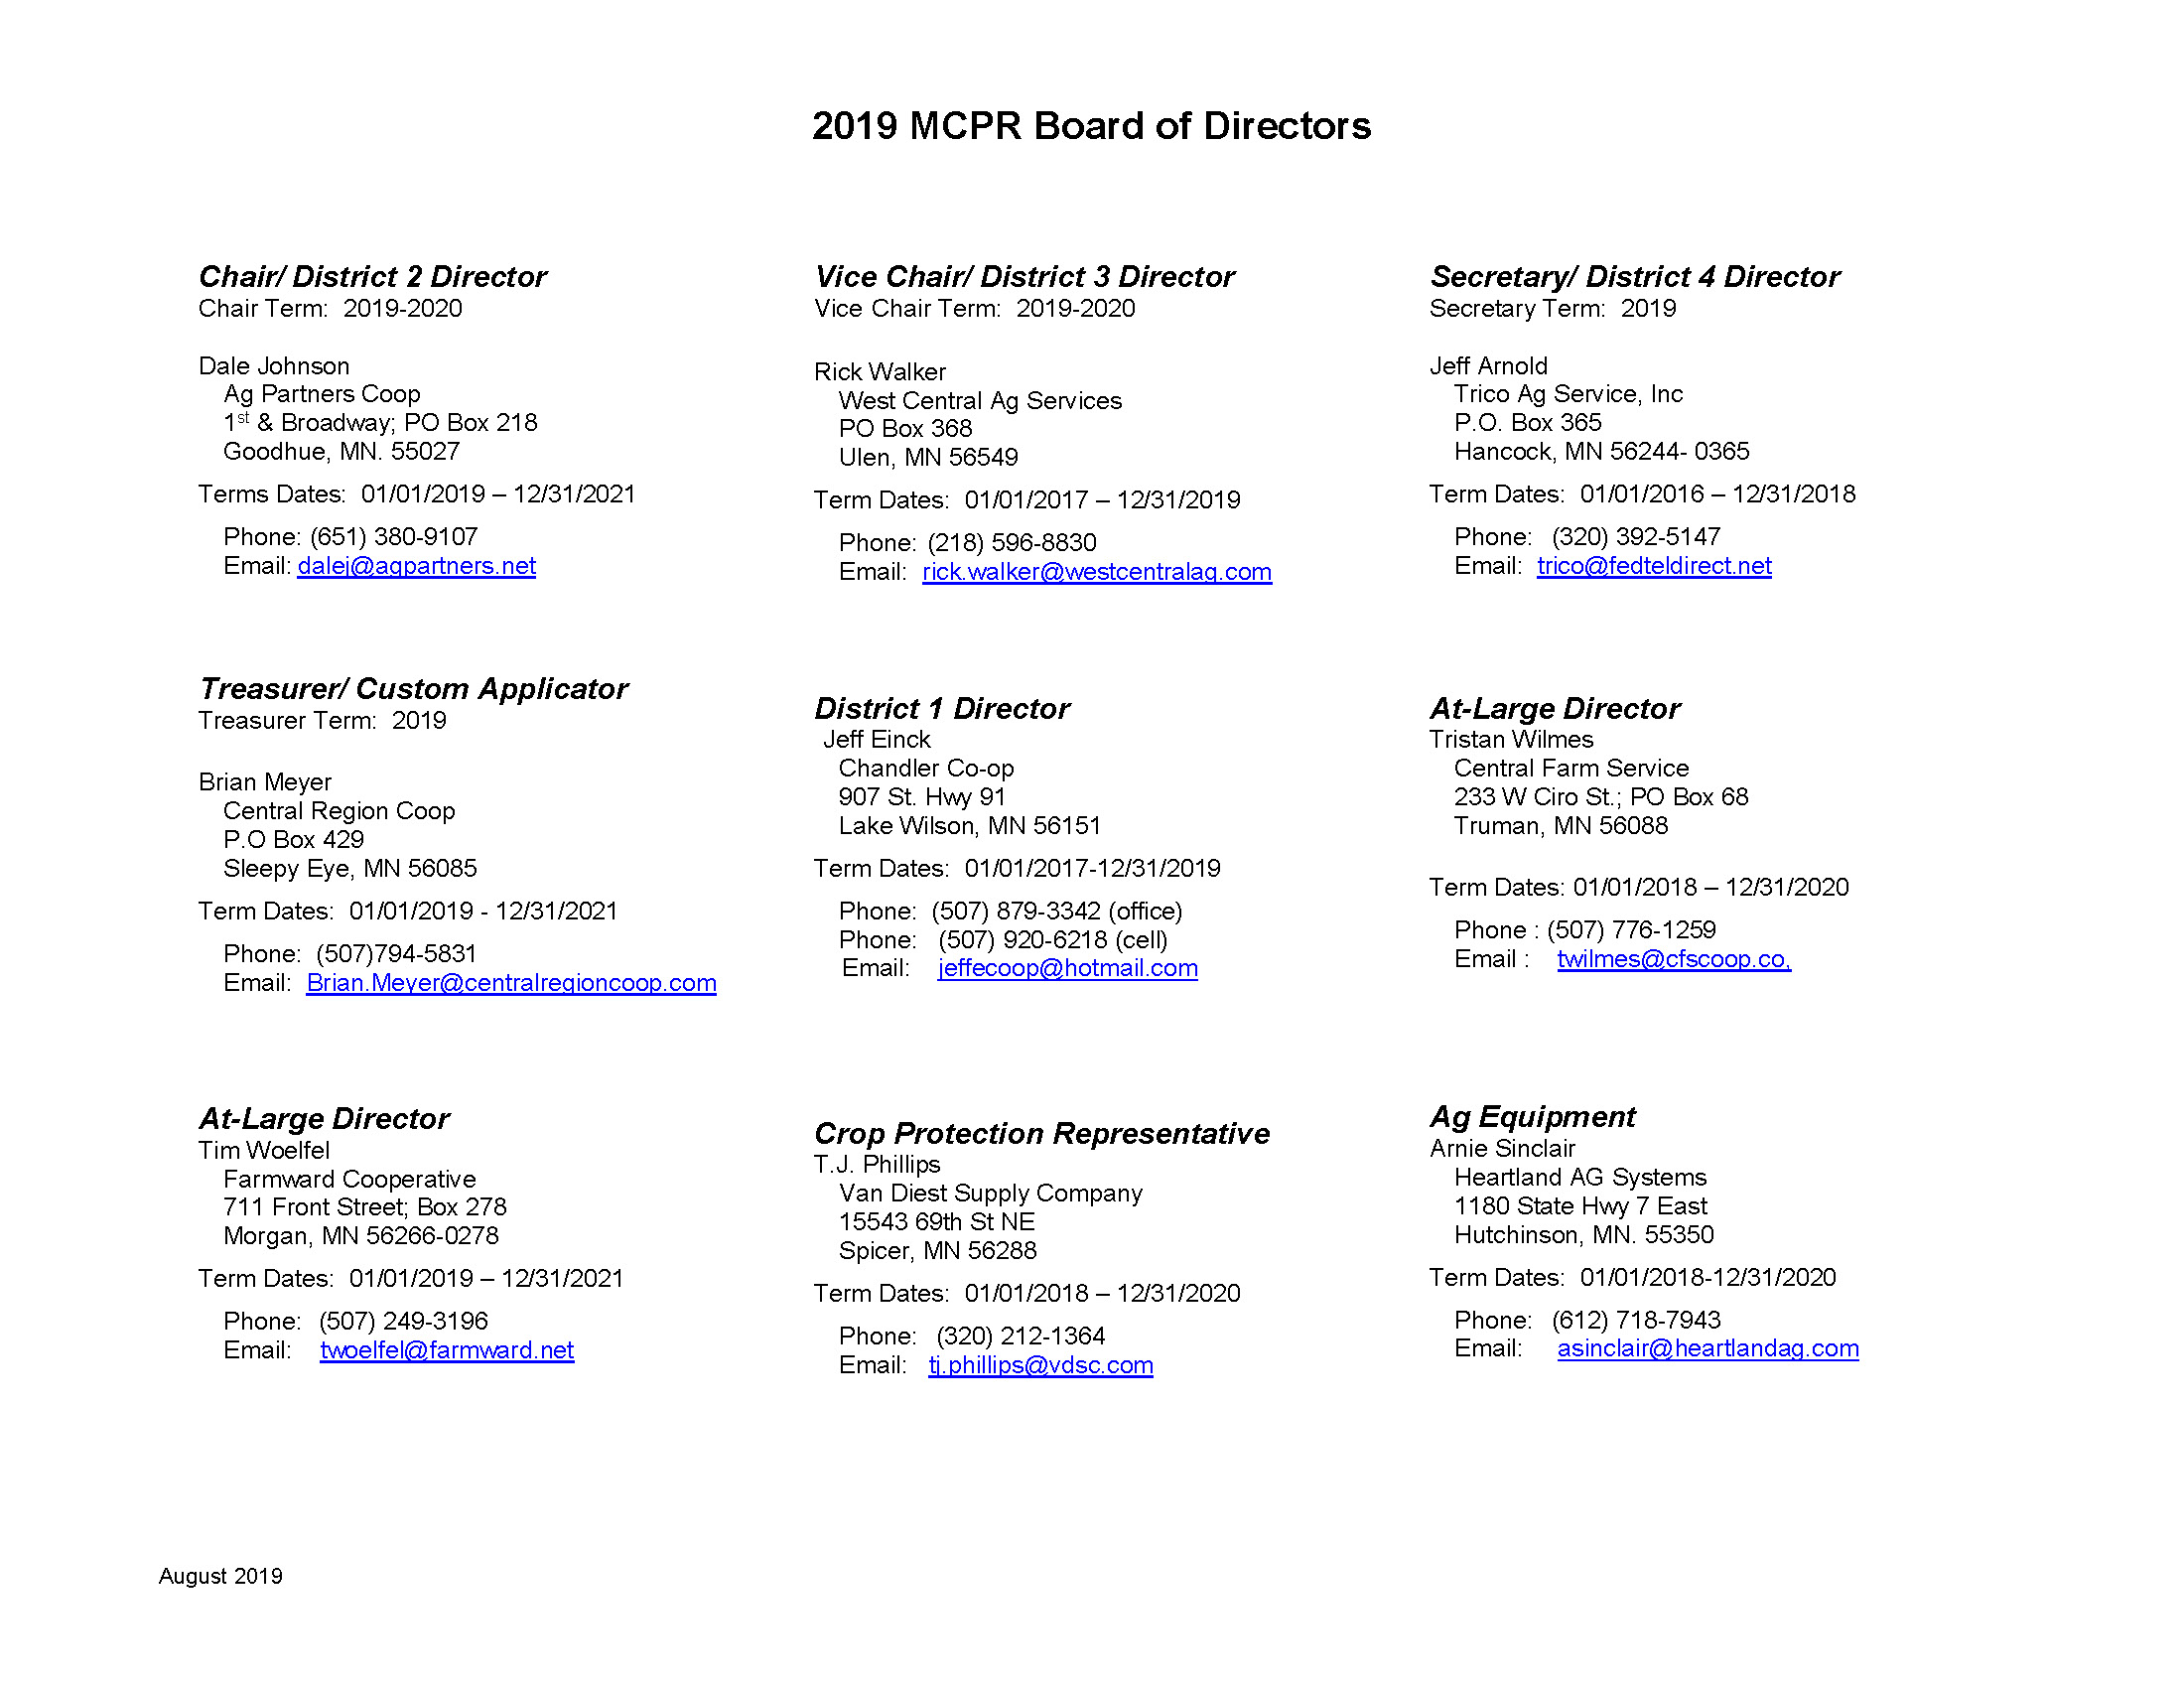 2019 MCPR Board of Directors_August21_2019_Page_1